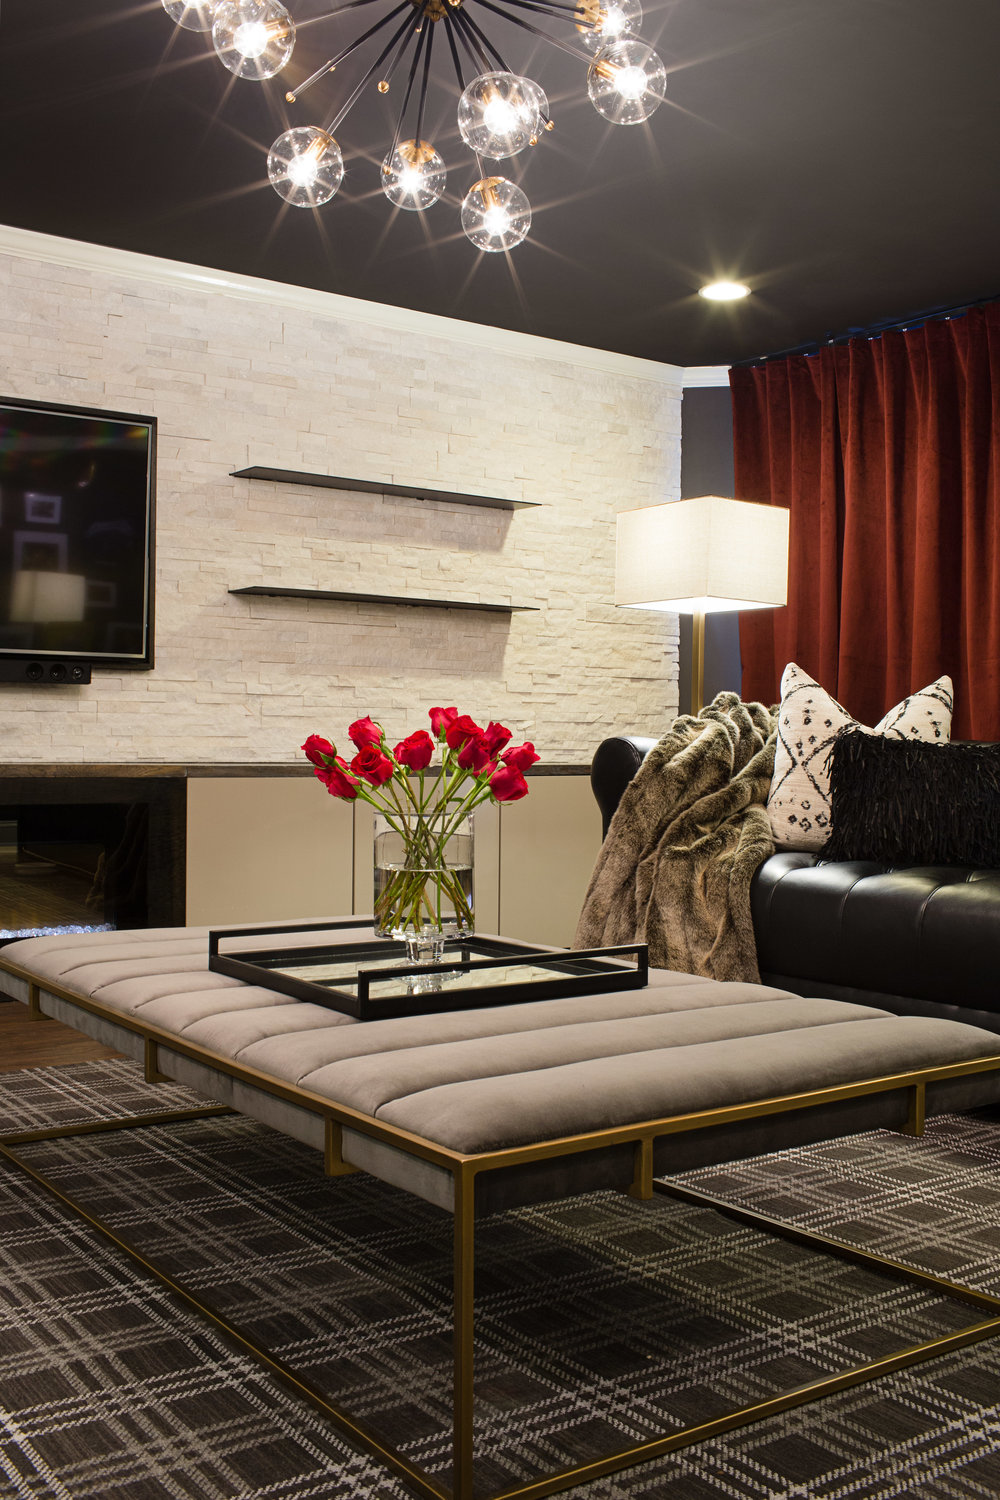 MUSIC LOVERS LOUNGE   Soul, Hip-Hop, and Rock n' Roll. This music lovers lounge is moody, with sleek black leather Chesterfield sofas, a modern Plaid rug, wall-to-wall red velvet curtains, and warm brass metals. Steel shelves cantilever through a stone wall which introduces a natural element at the room's center.